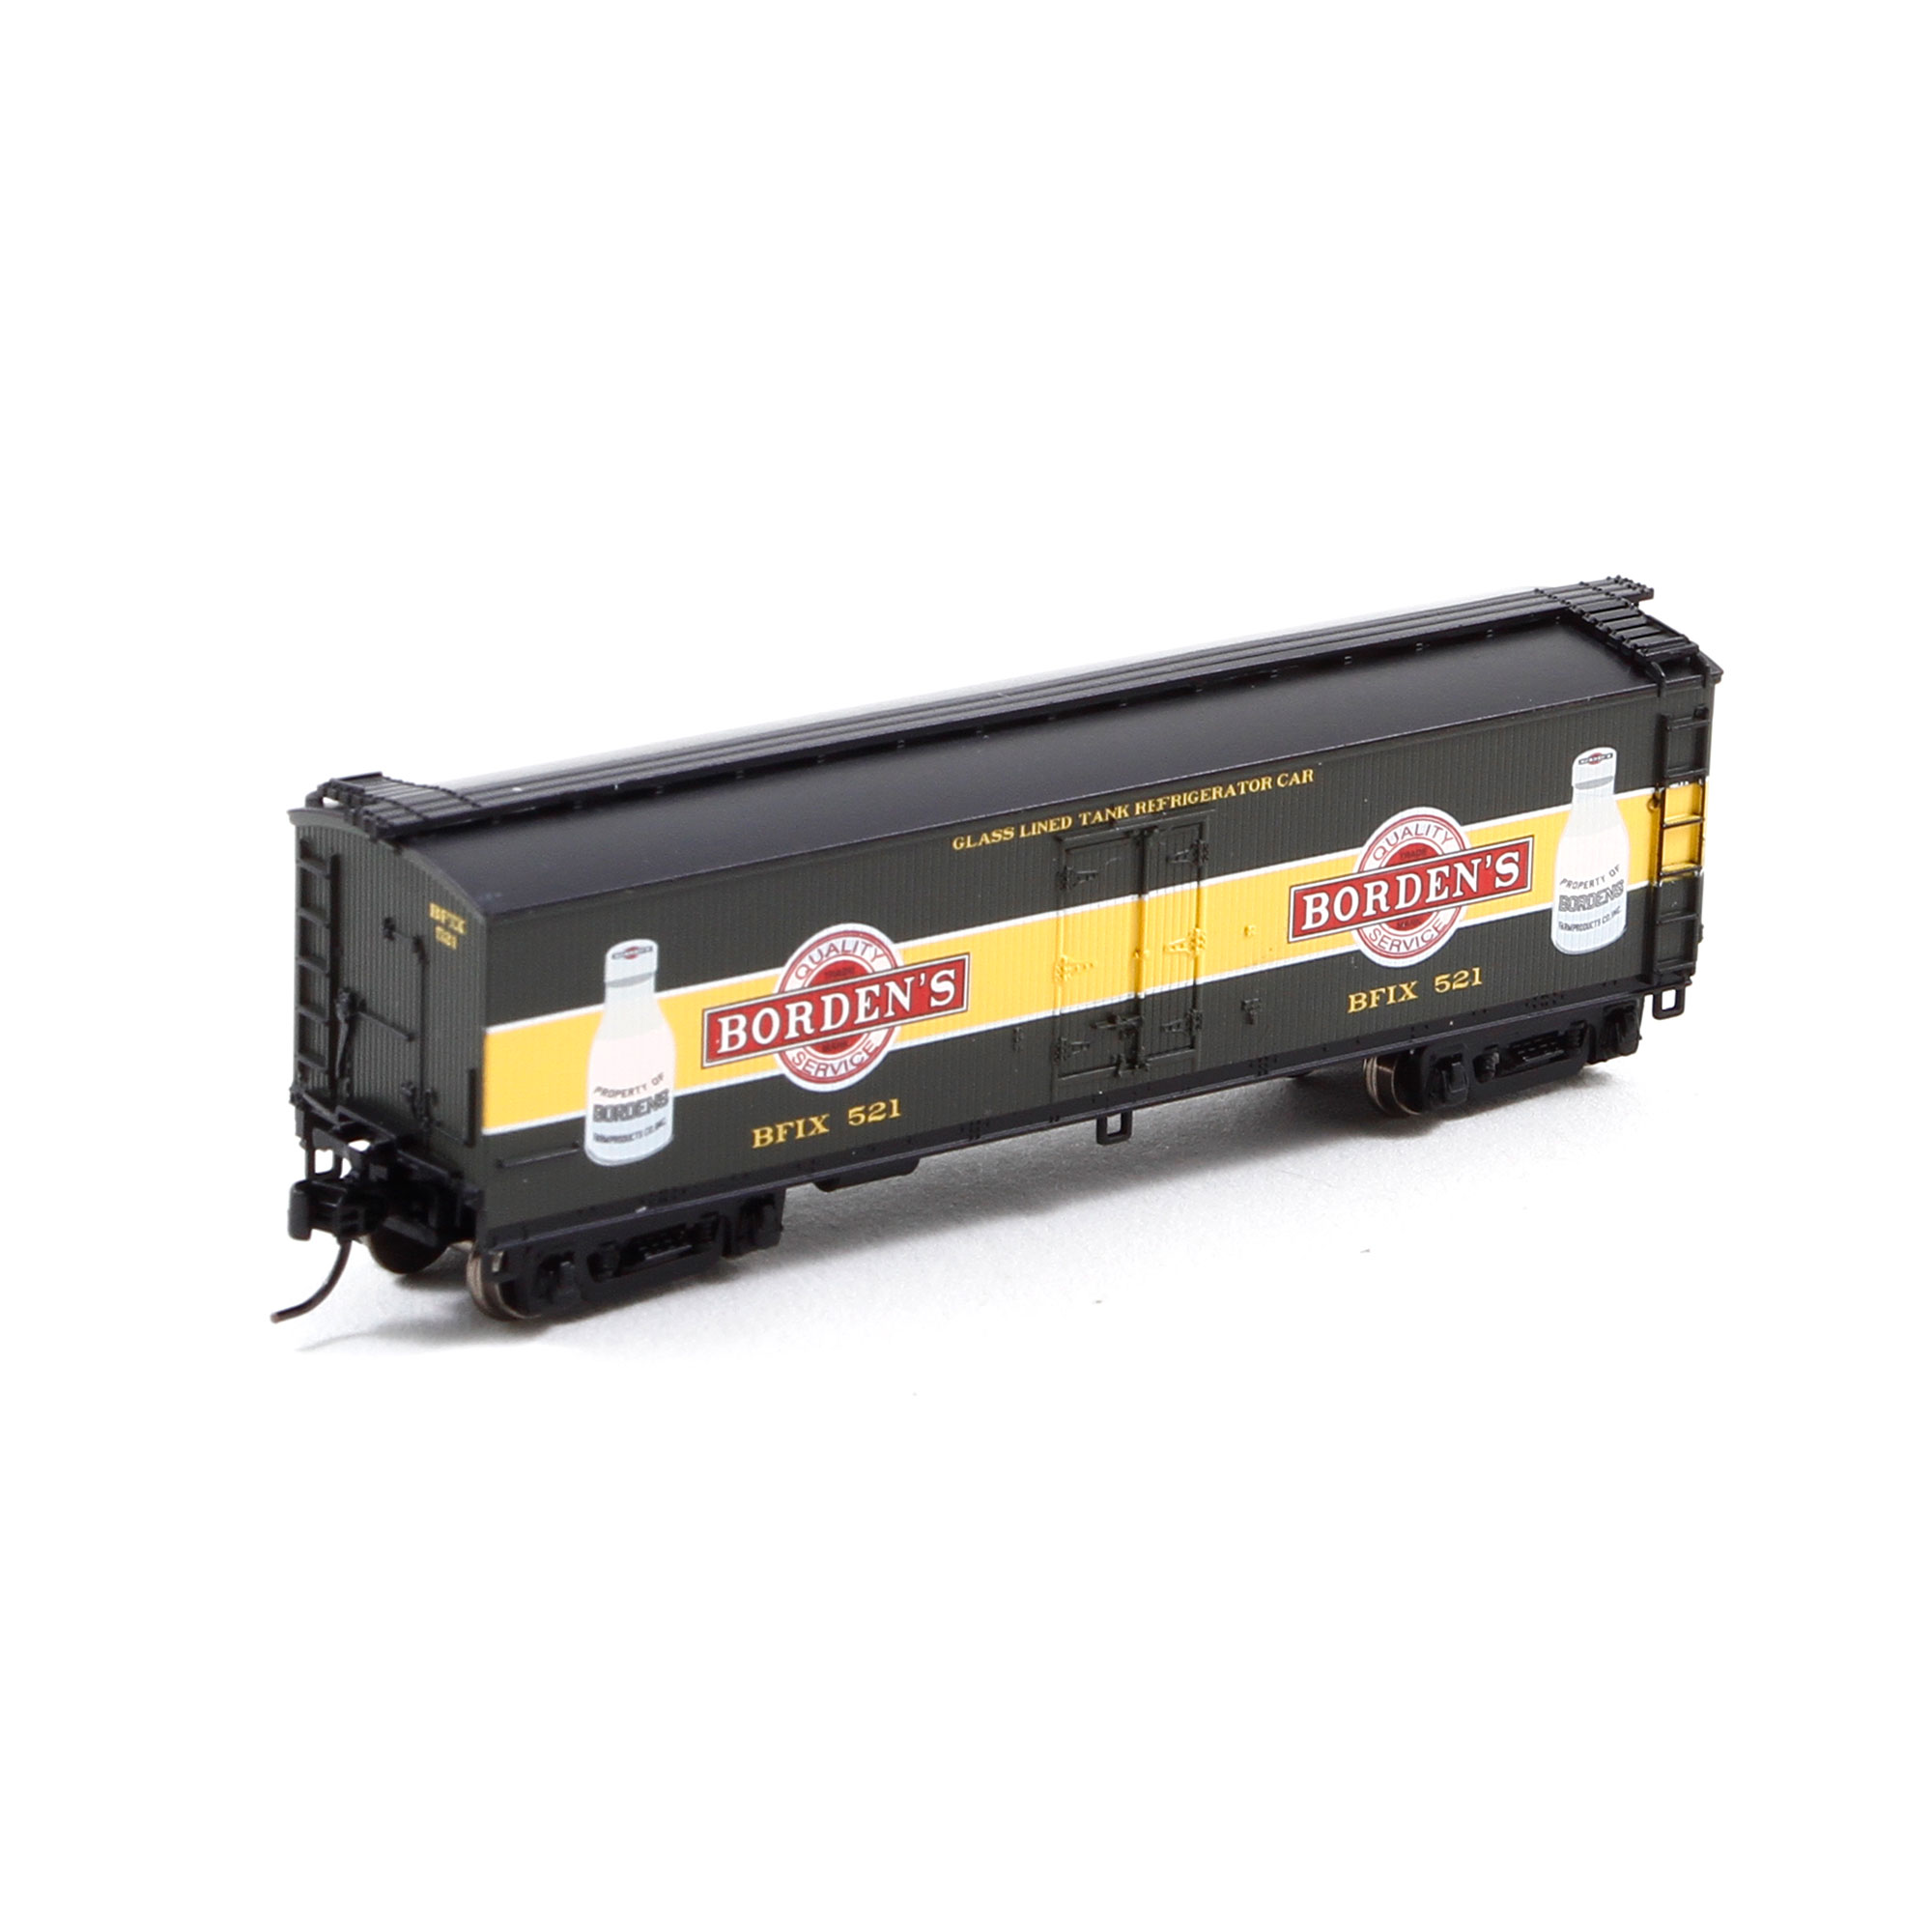 N Scale - Athearn - 23675 - Reefer, 40 Foot, Pfaudler - Borden